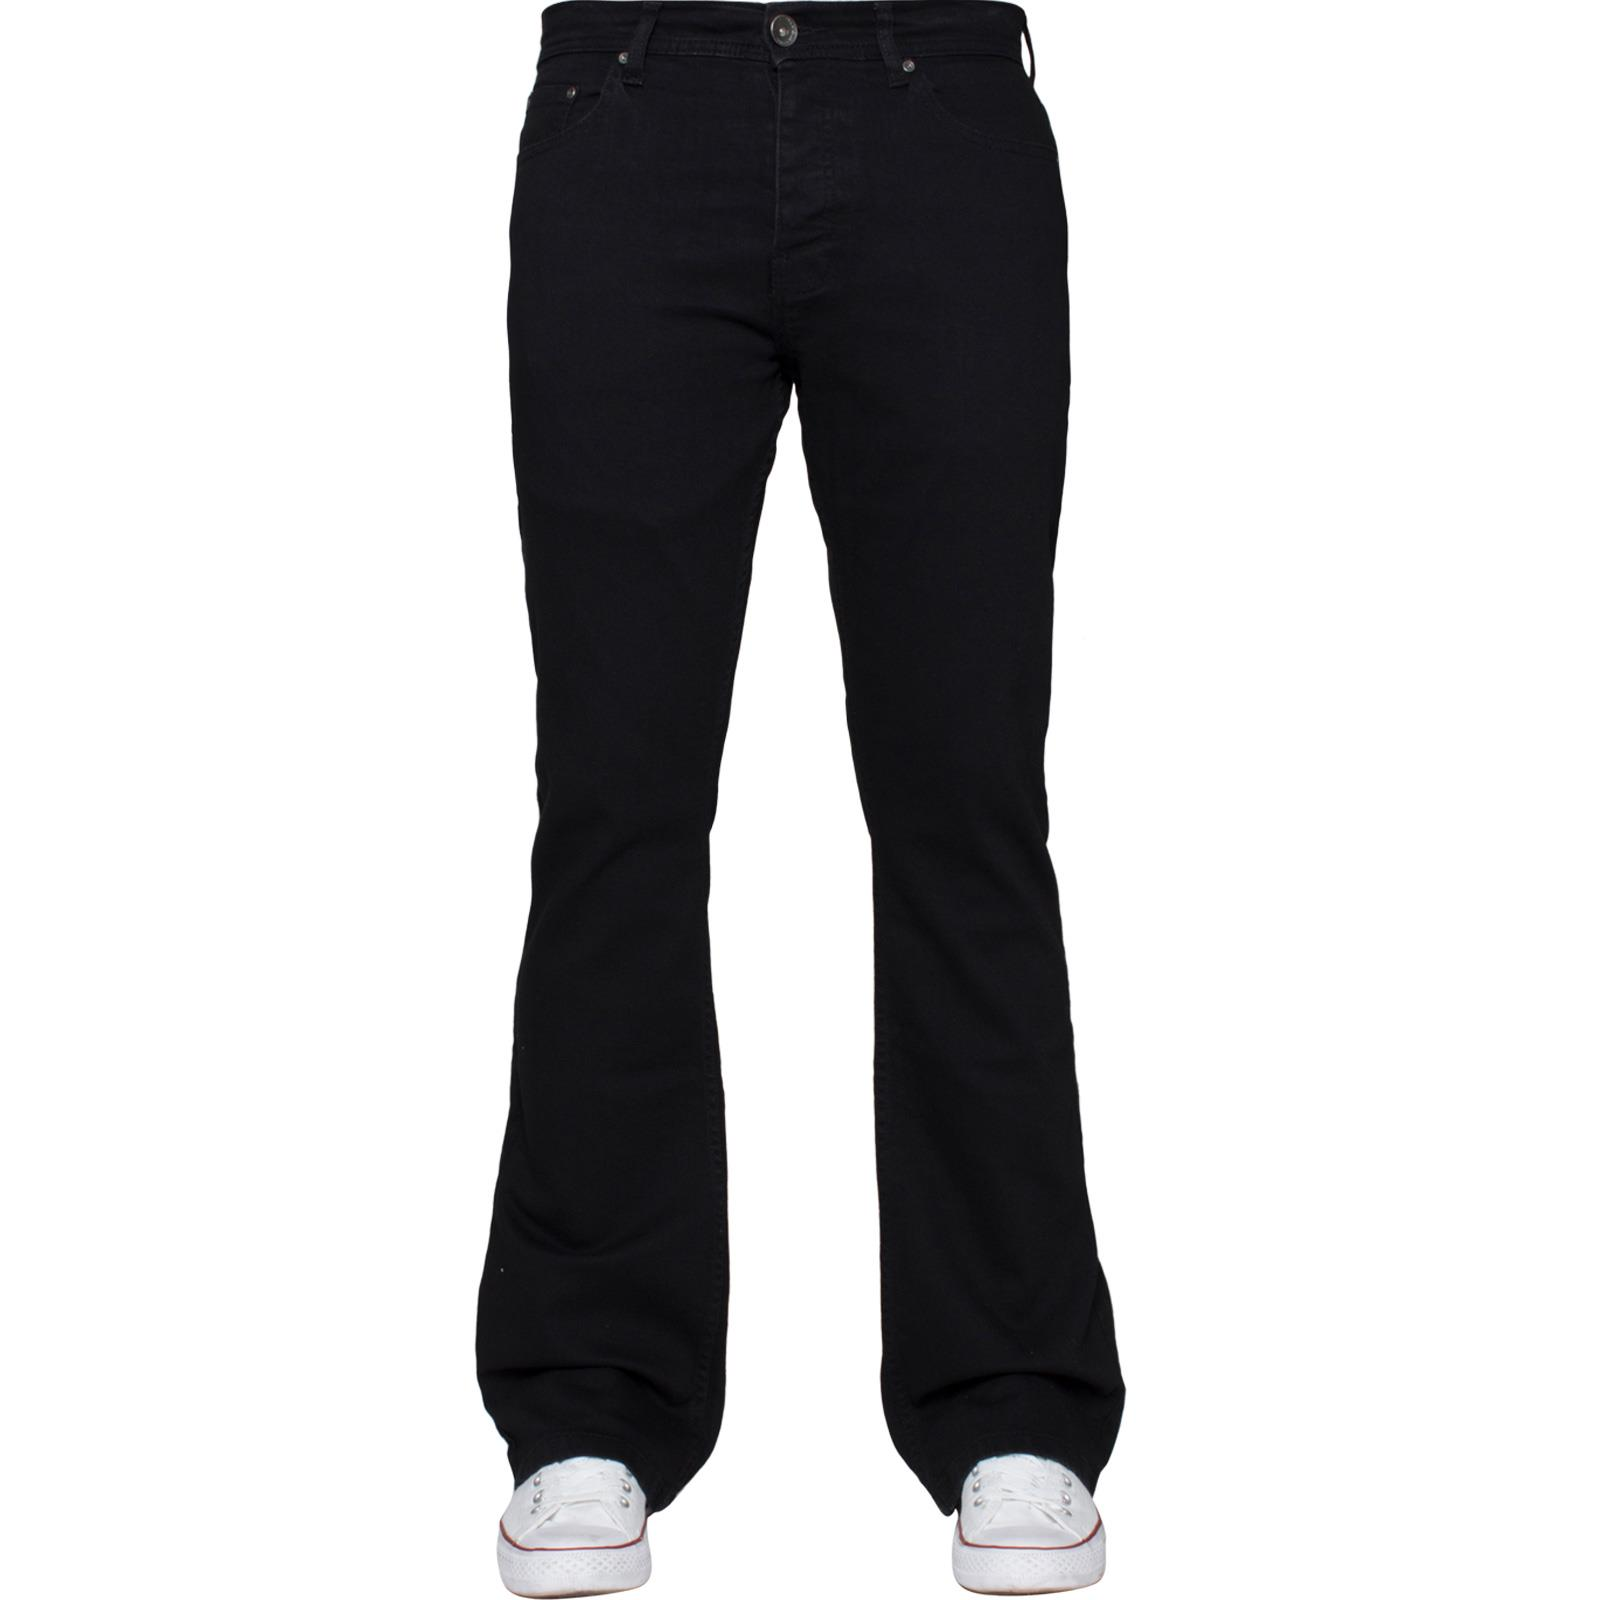 Enzo-Mens-Jeans-Big-Tall-Leg-King-Size-Denim-Pants-Chino-Trousers-Waist-44-034-60-034 miniature 58